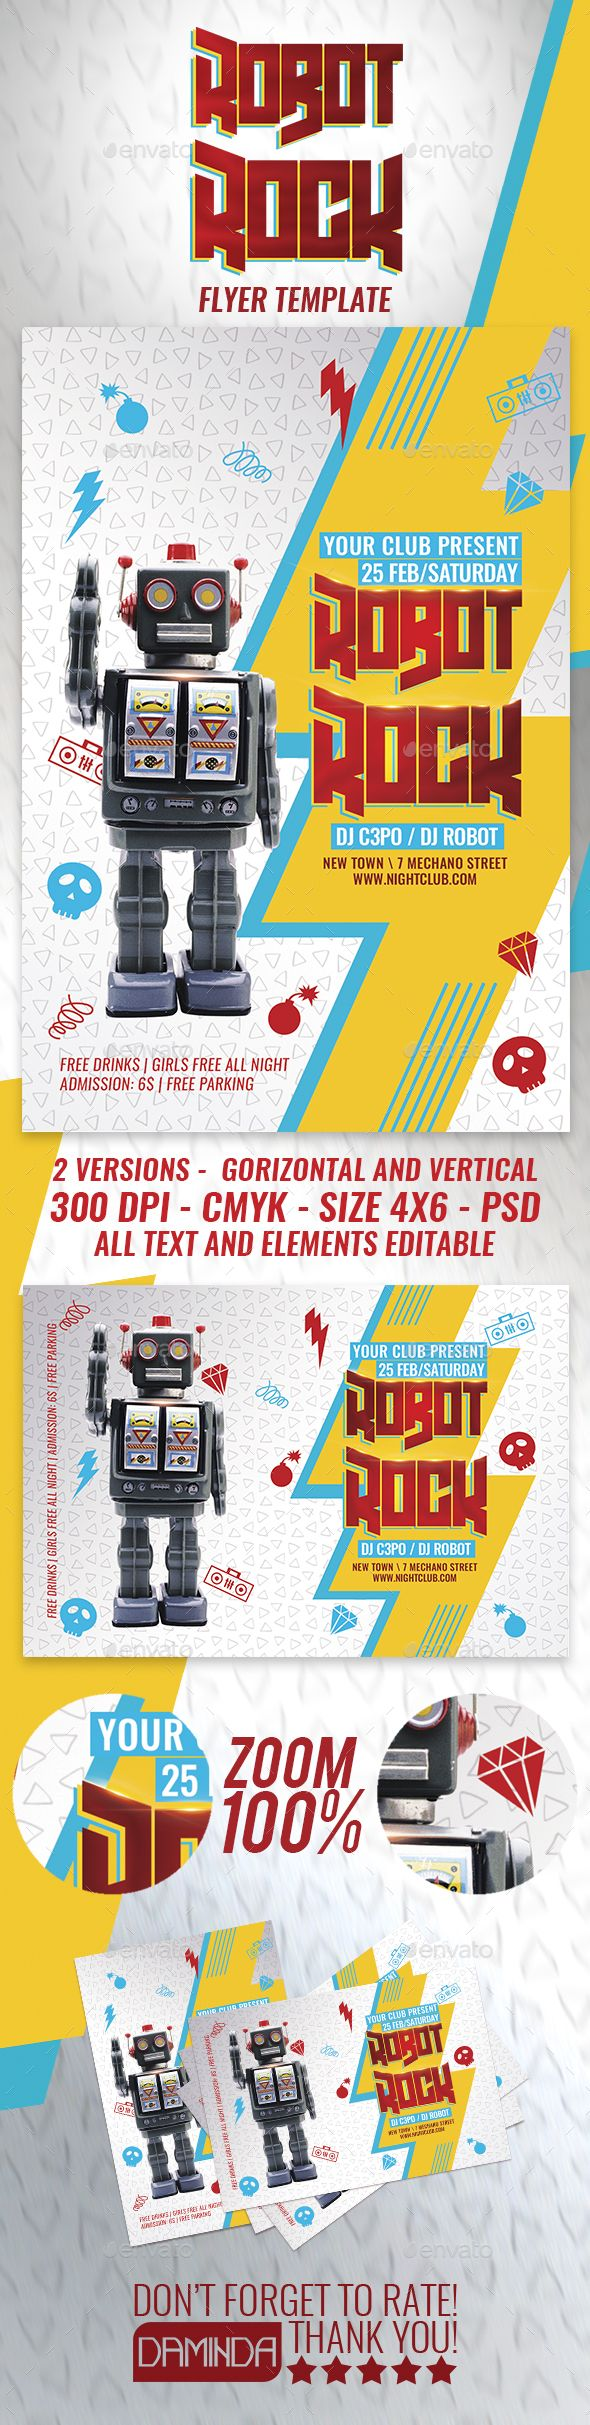 Poster design in photoshop 7 - Robot Rock Flyer Template Photoshop Psd Awesome New Wave